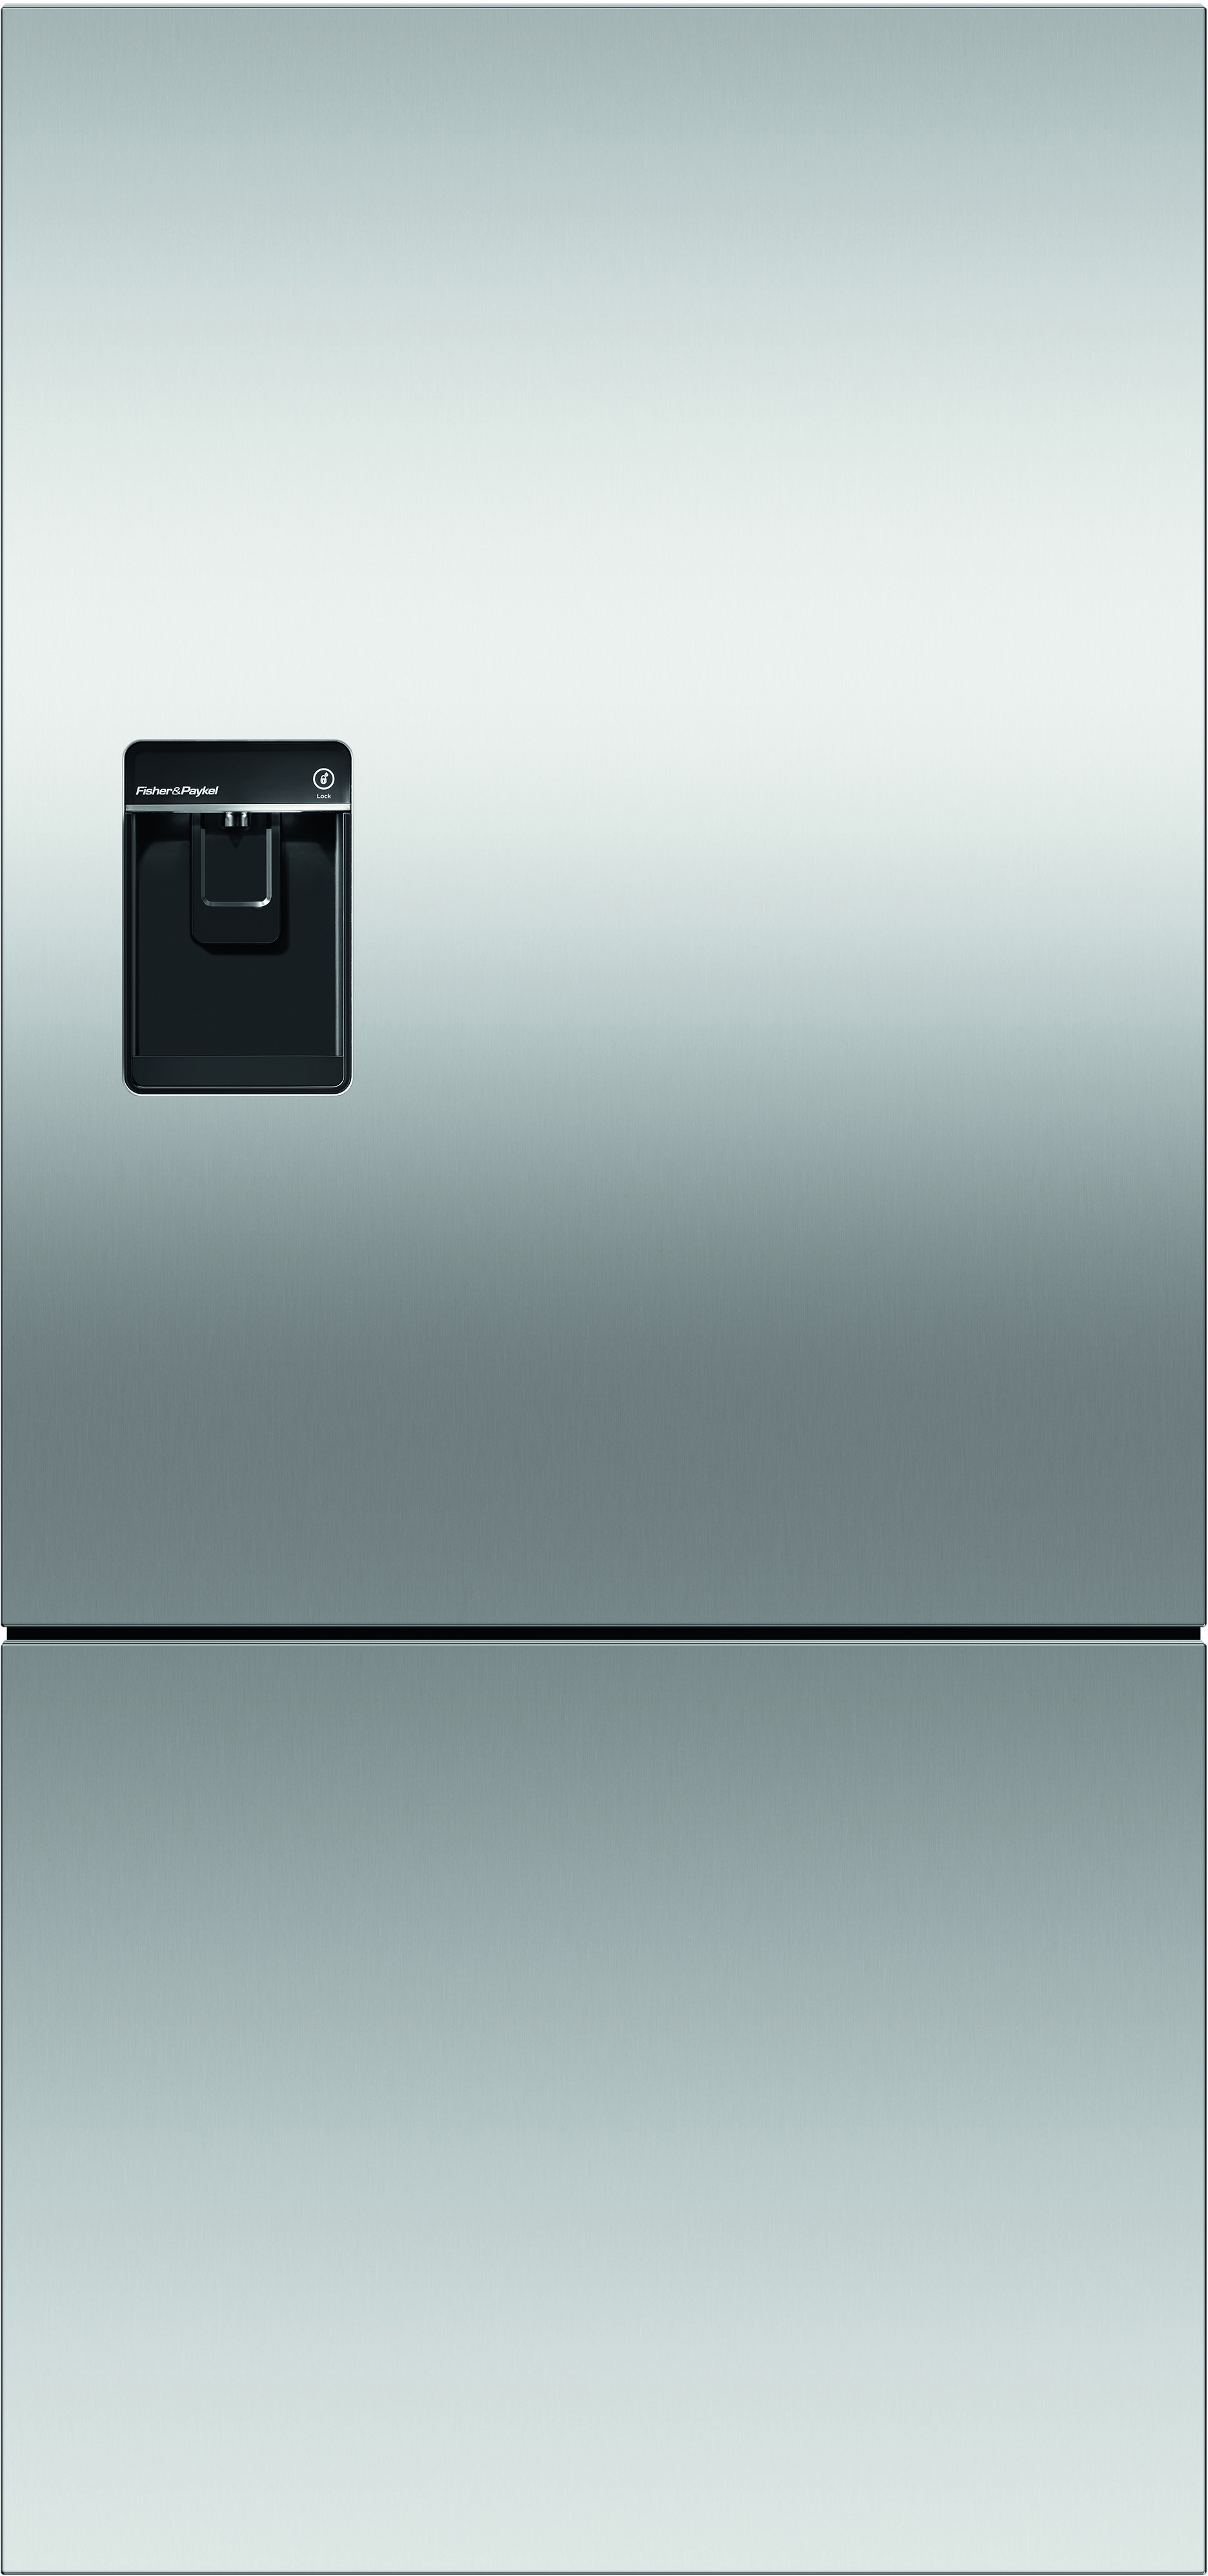 What Is The Depth Of A Counter Depth Refrigerator Built In Counter Depth Refrigerators